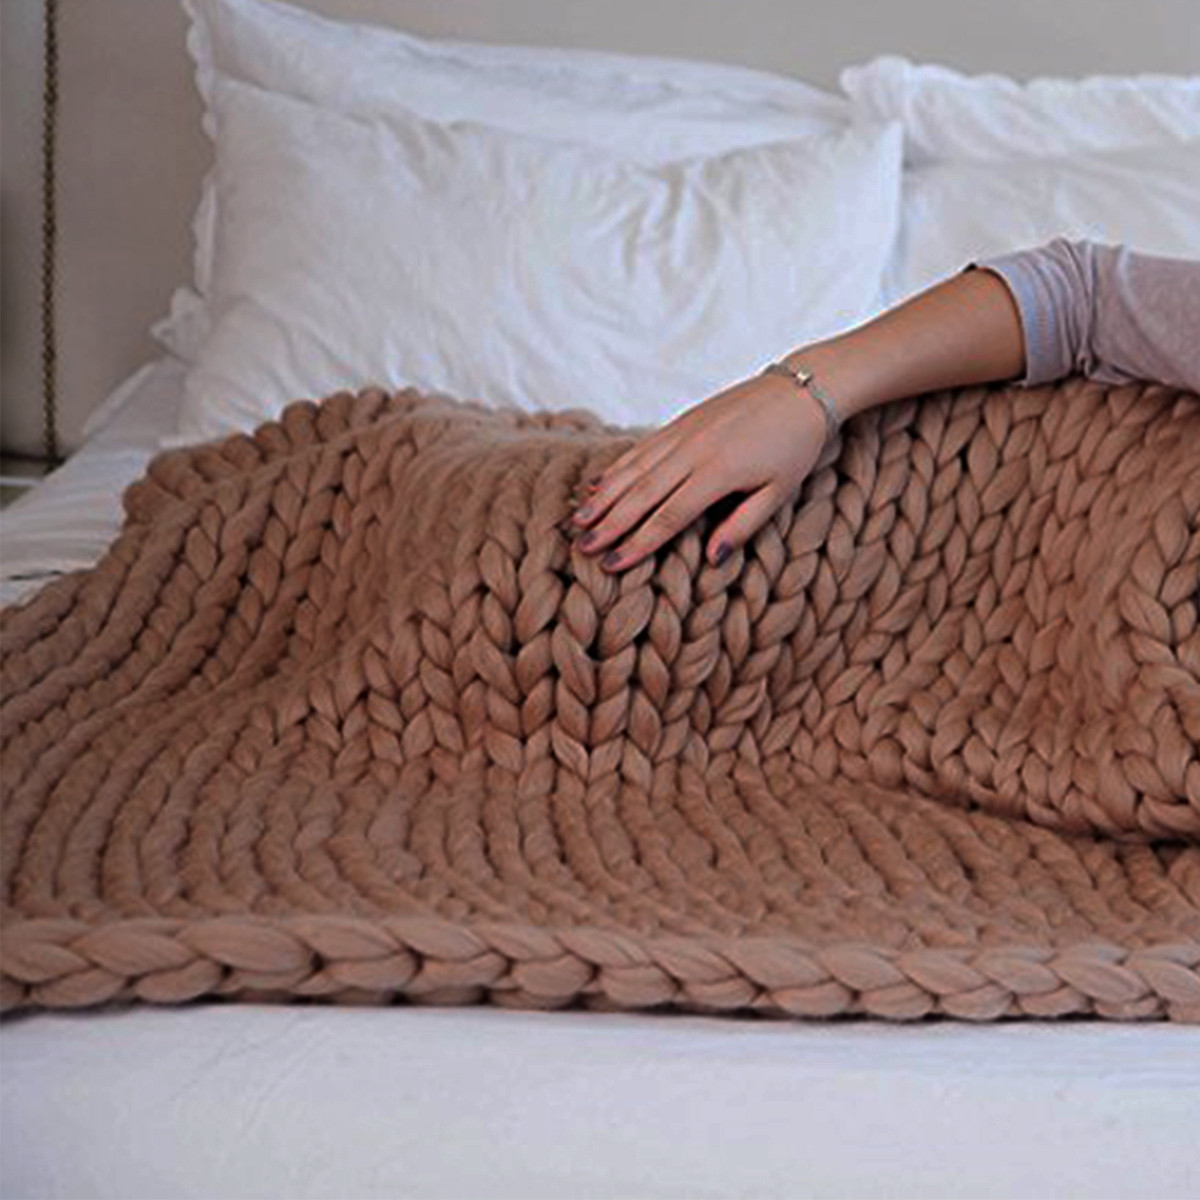 Awesome Handmade Chunky Knitted Blanket Wool Thick Line Yarn Fat Yarn Blanket Of Adorable 40 Pics Fat Yarn Blanket